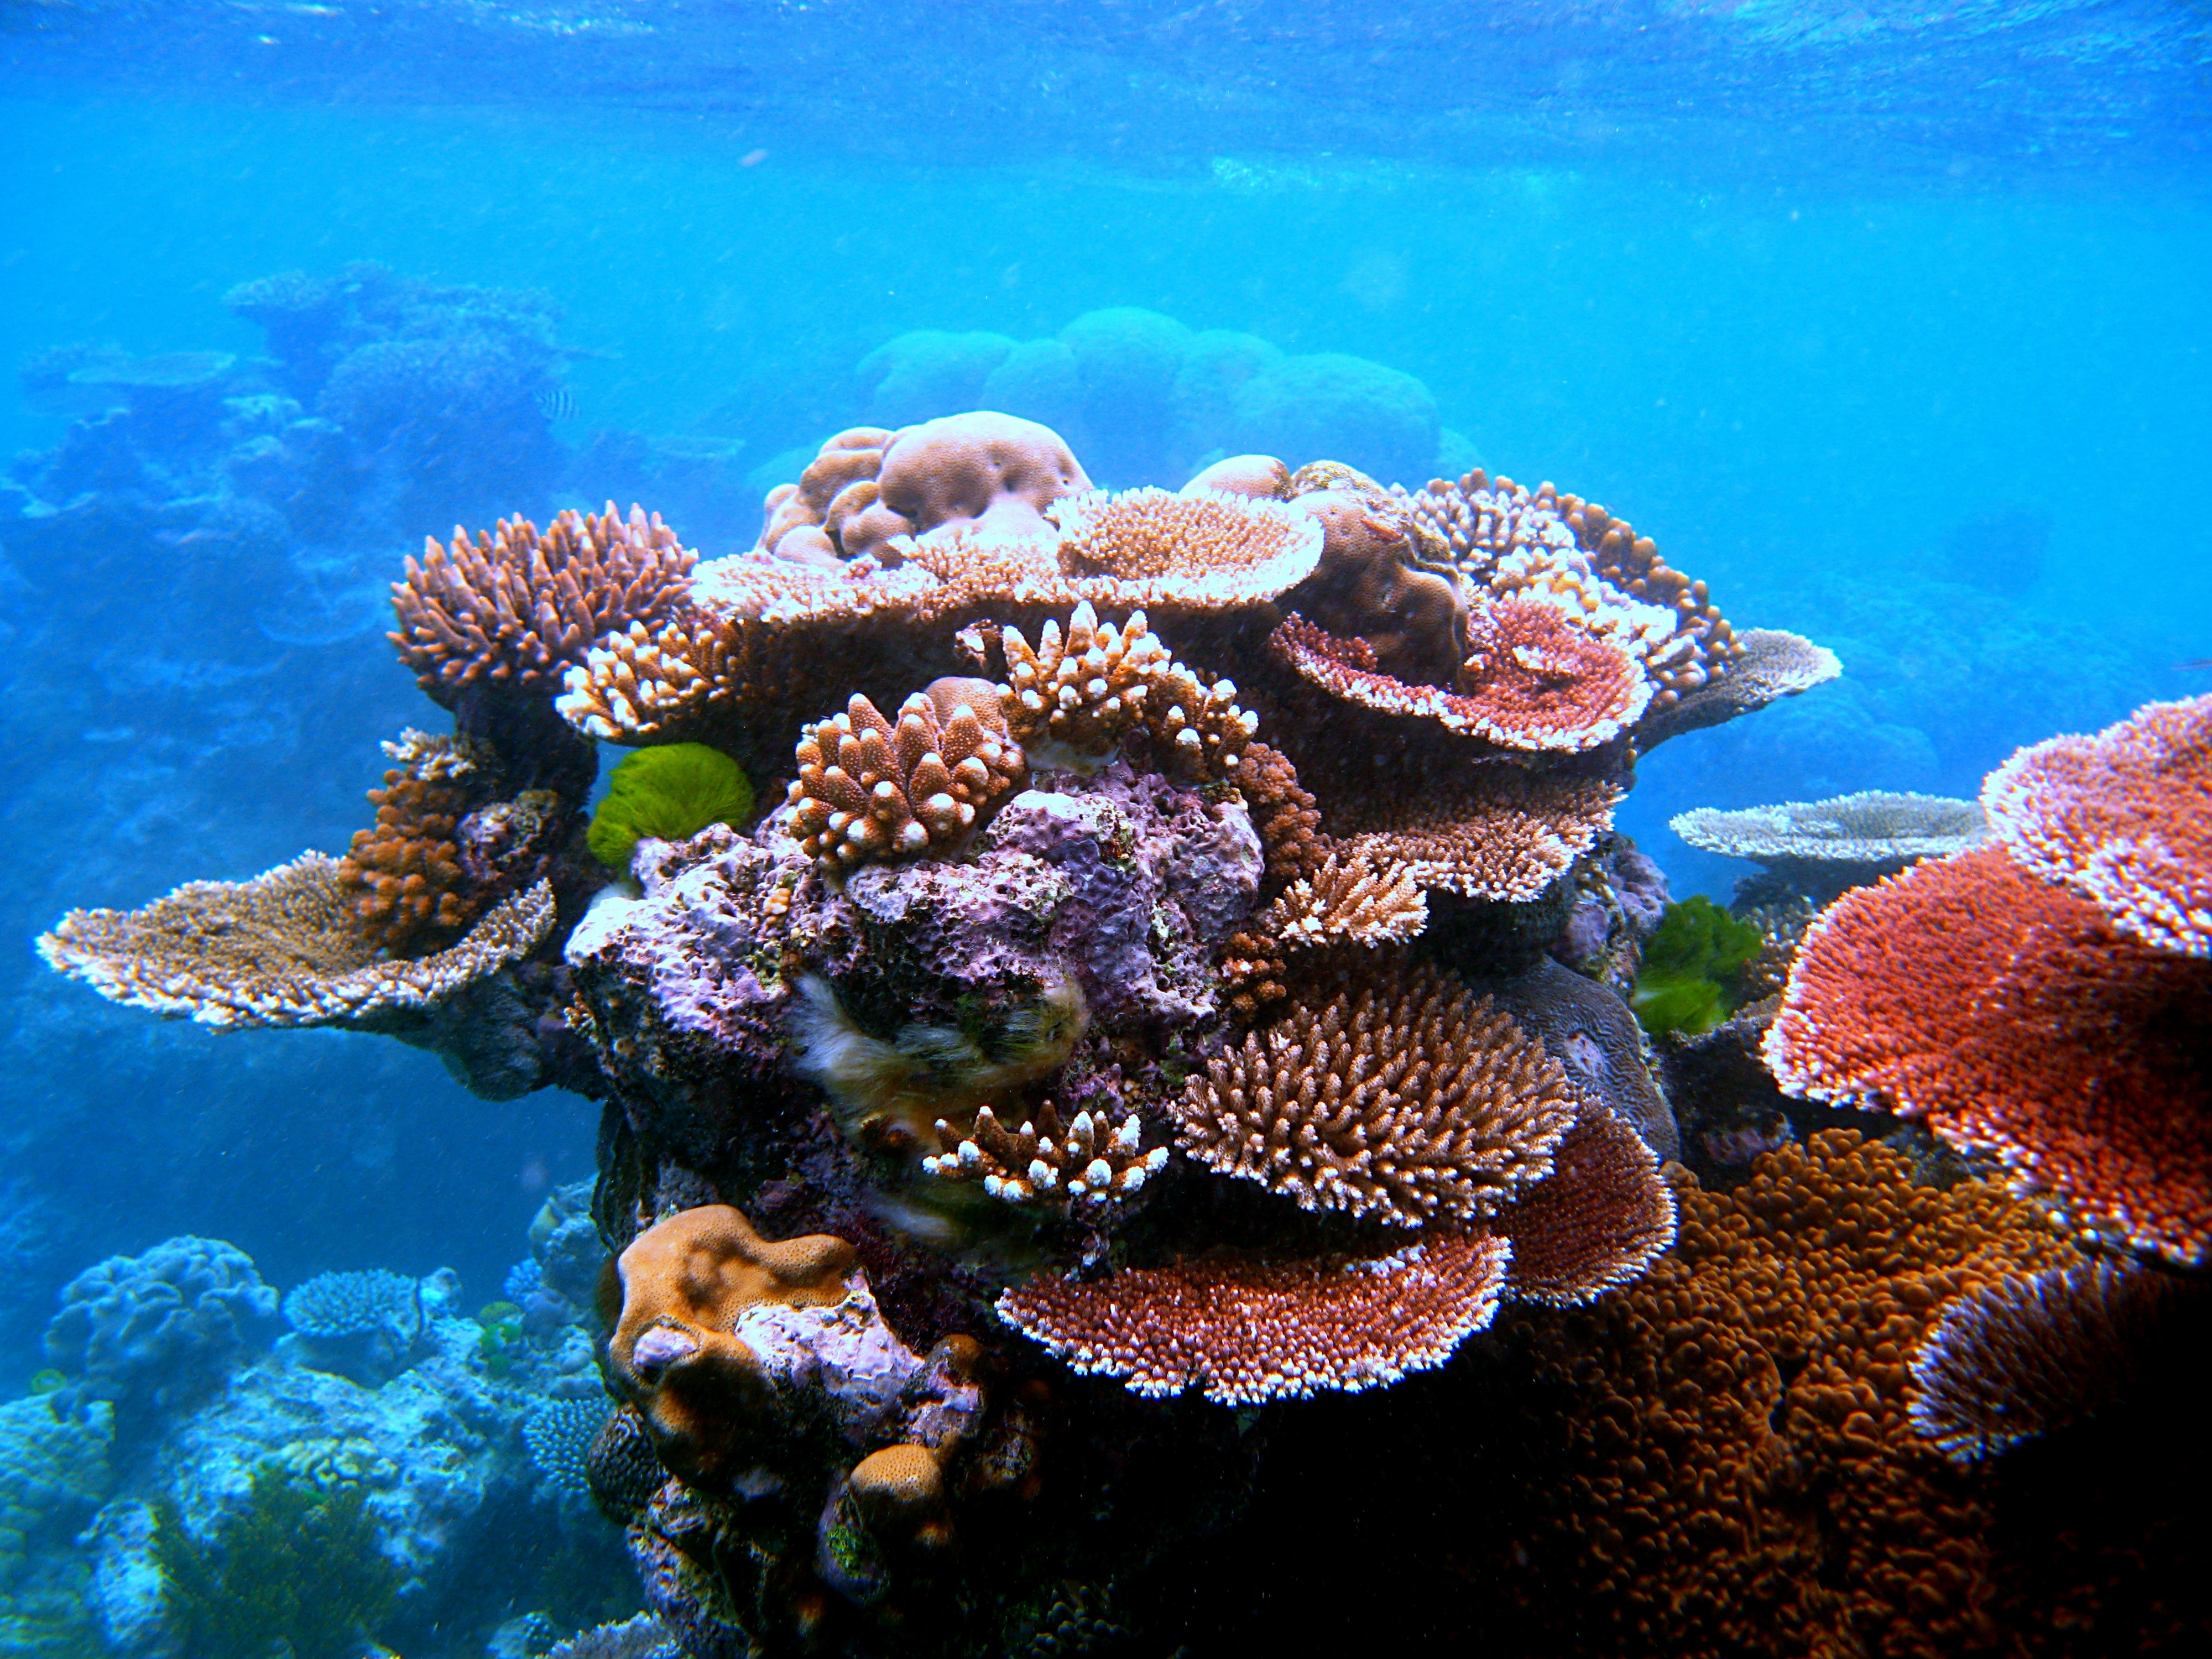 Caribbean coral reefs disappearing, study says